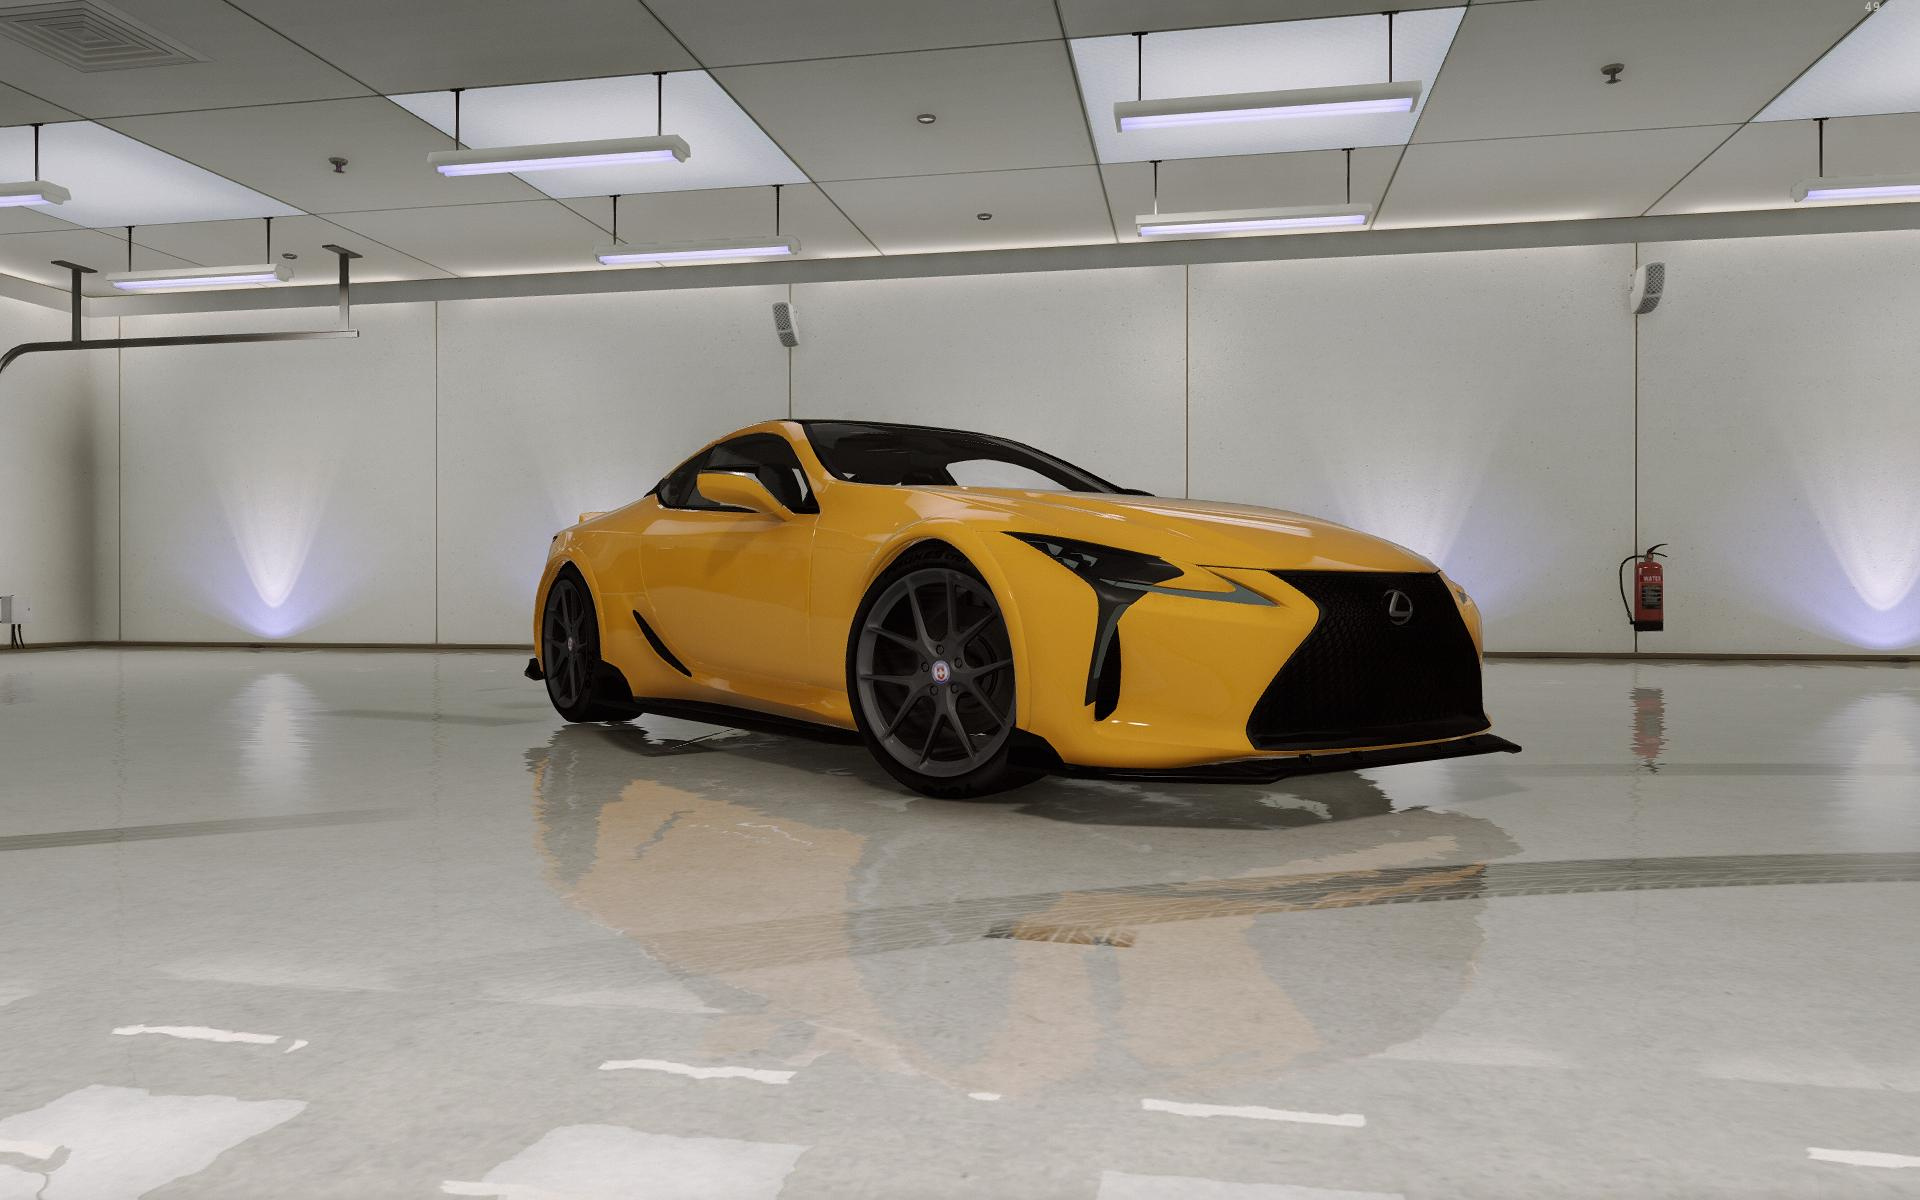 2018 Lexus LC 500 [Add Tuning